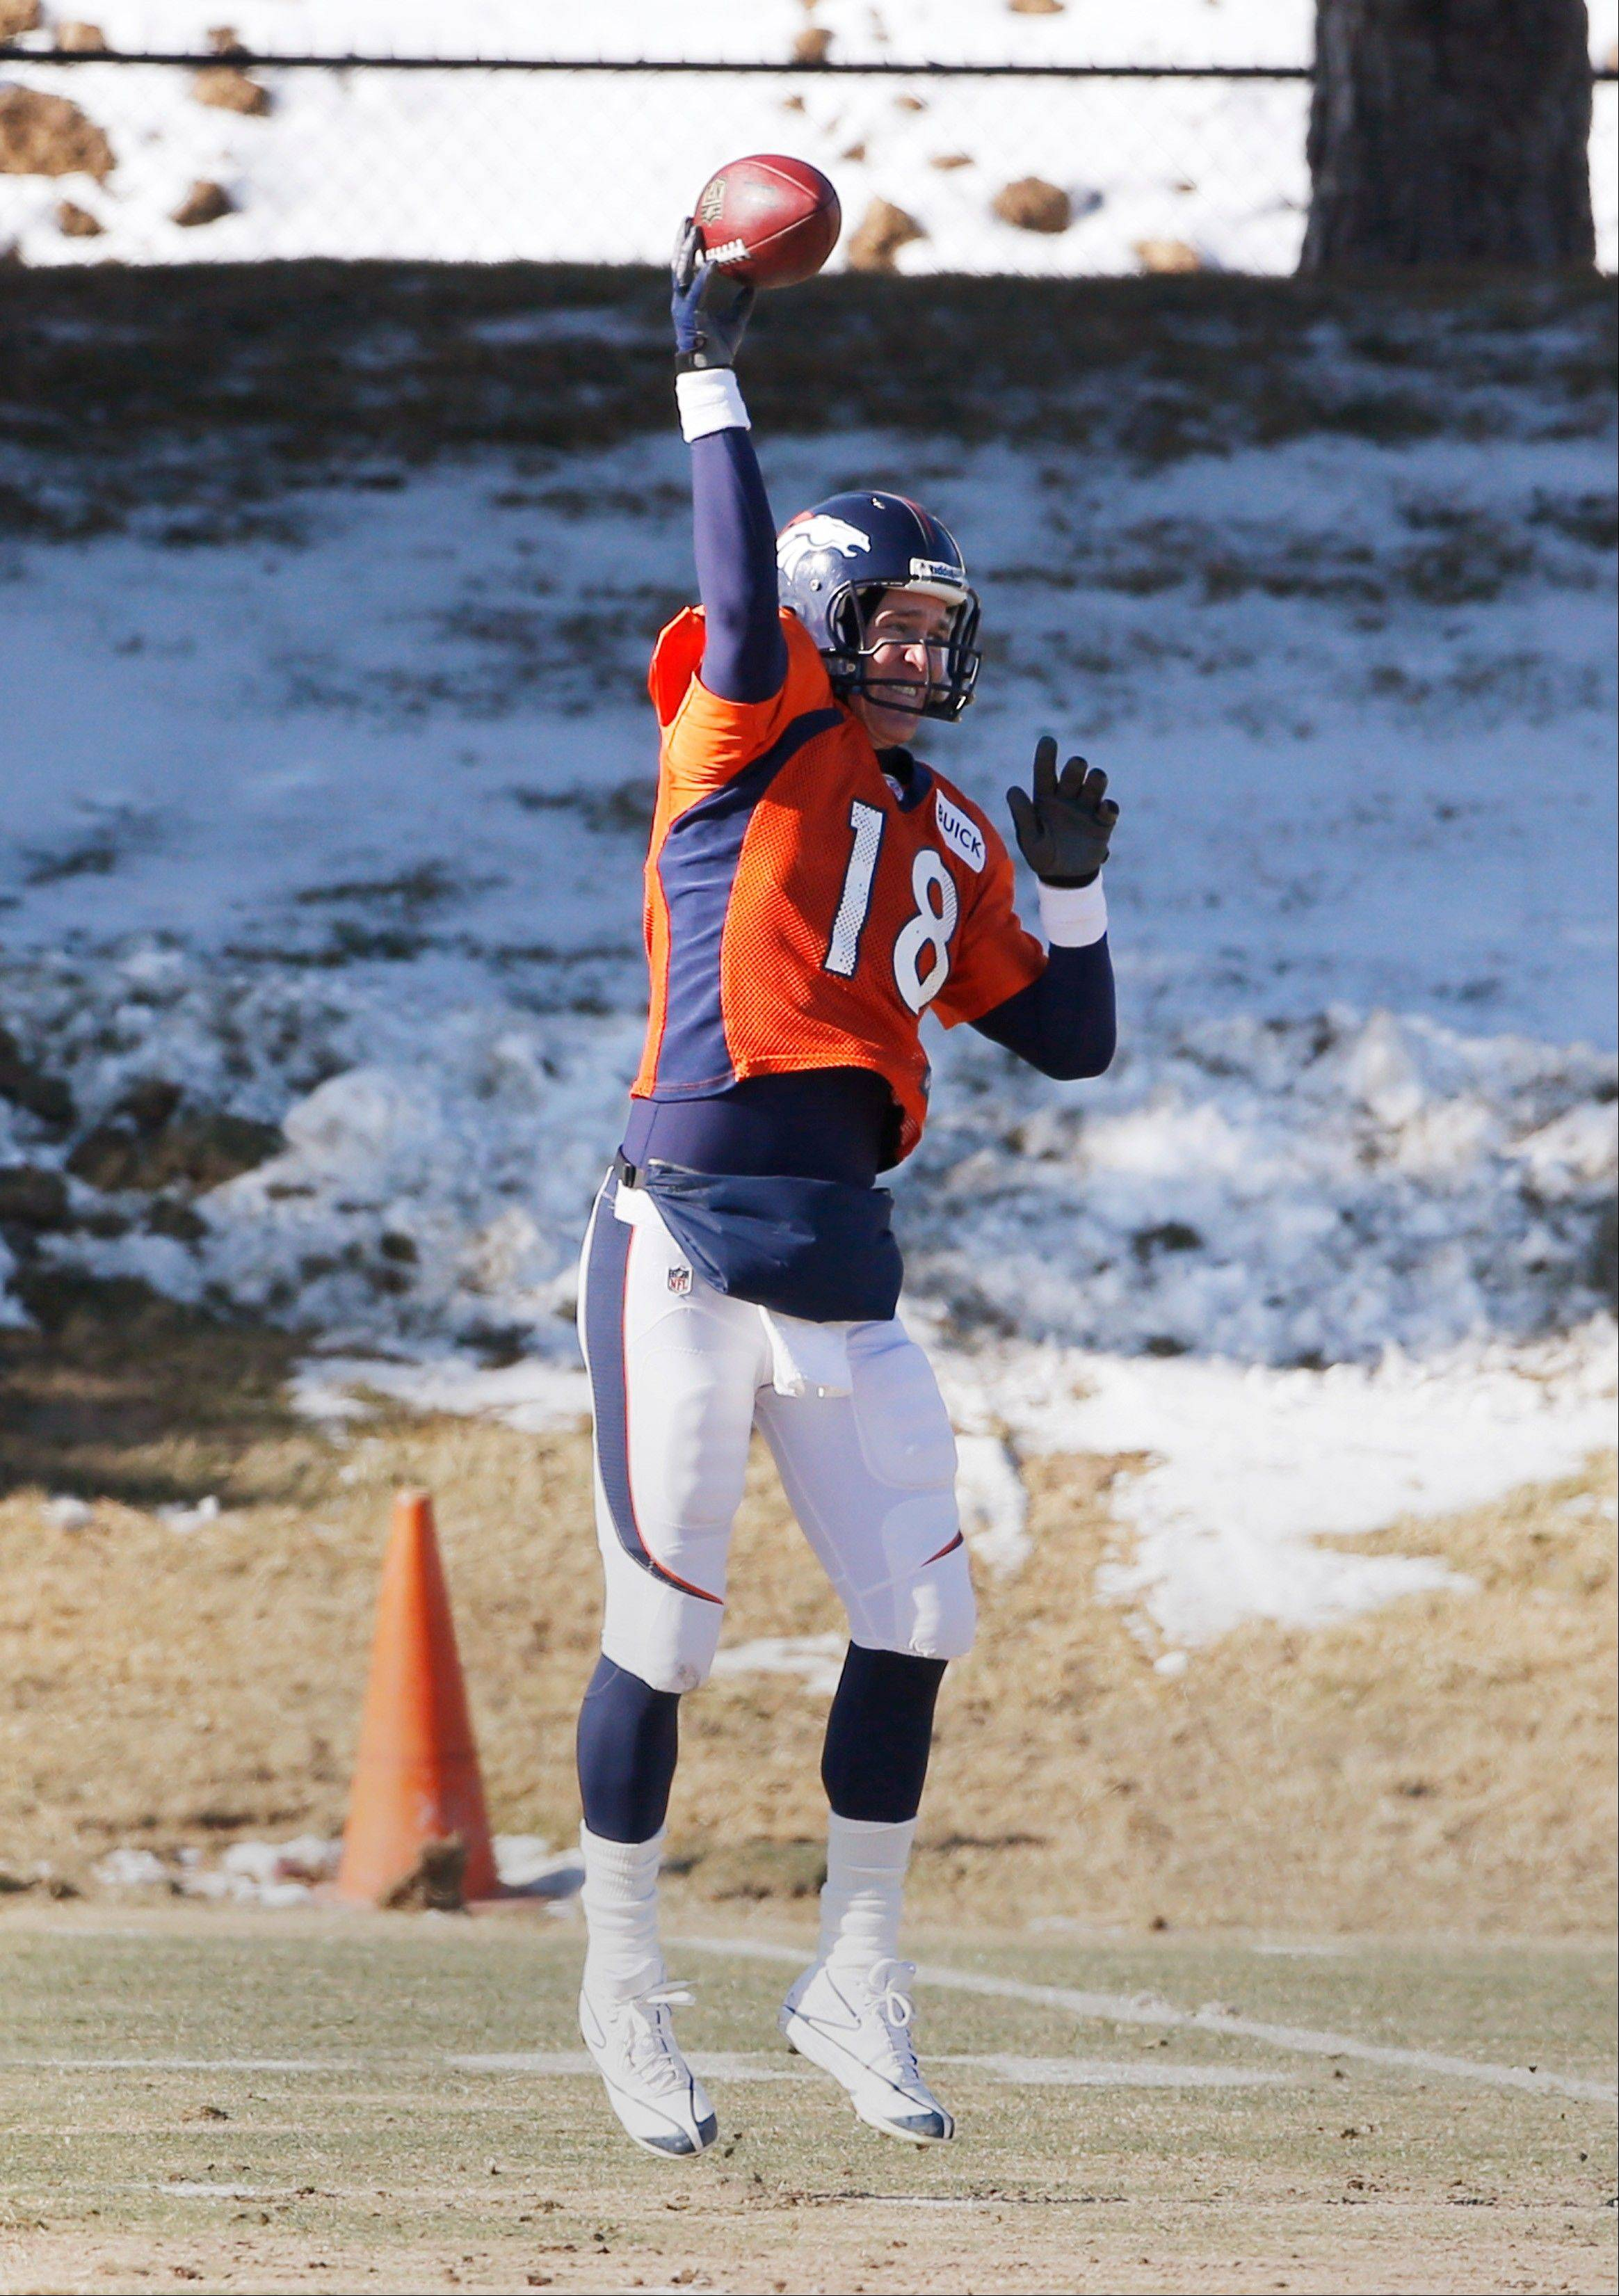 Denver Broncos quarterback Peyton Manning (18) throws a pass at practice for the football team's NFL playoff game against the San Diego Chargers at the Broncos training facility in Englewood, Colo., on Wednesday, Jan. 8, 2014. (AP Photo/Ed Andrieski)